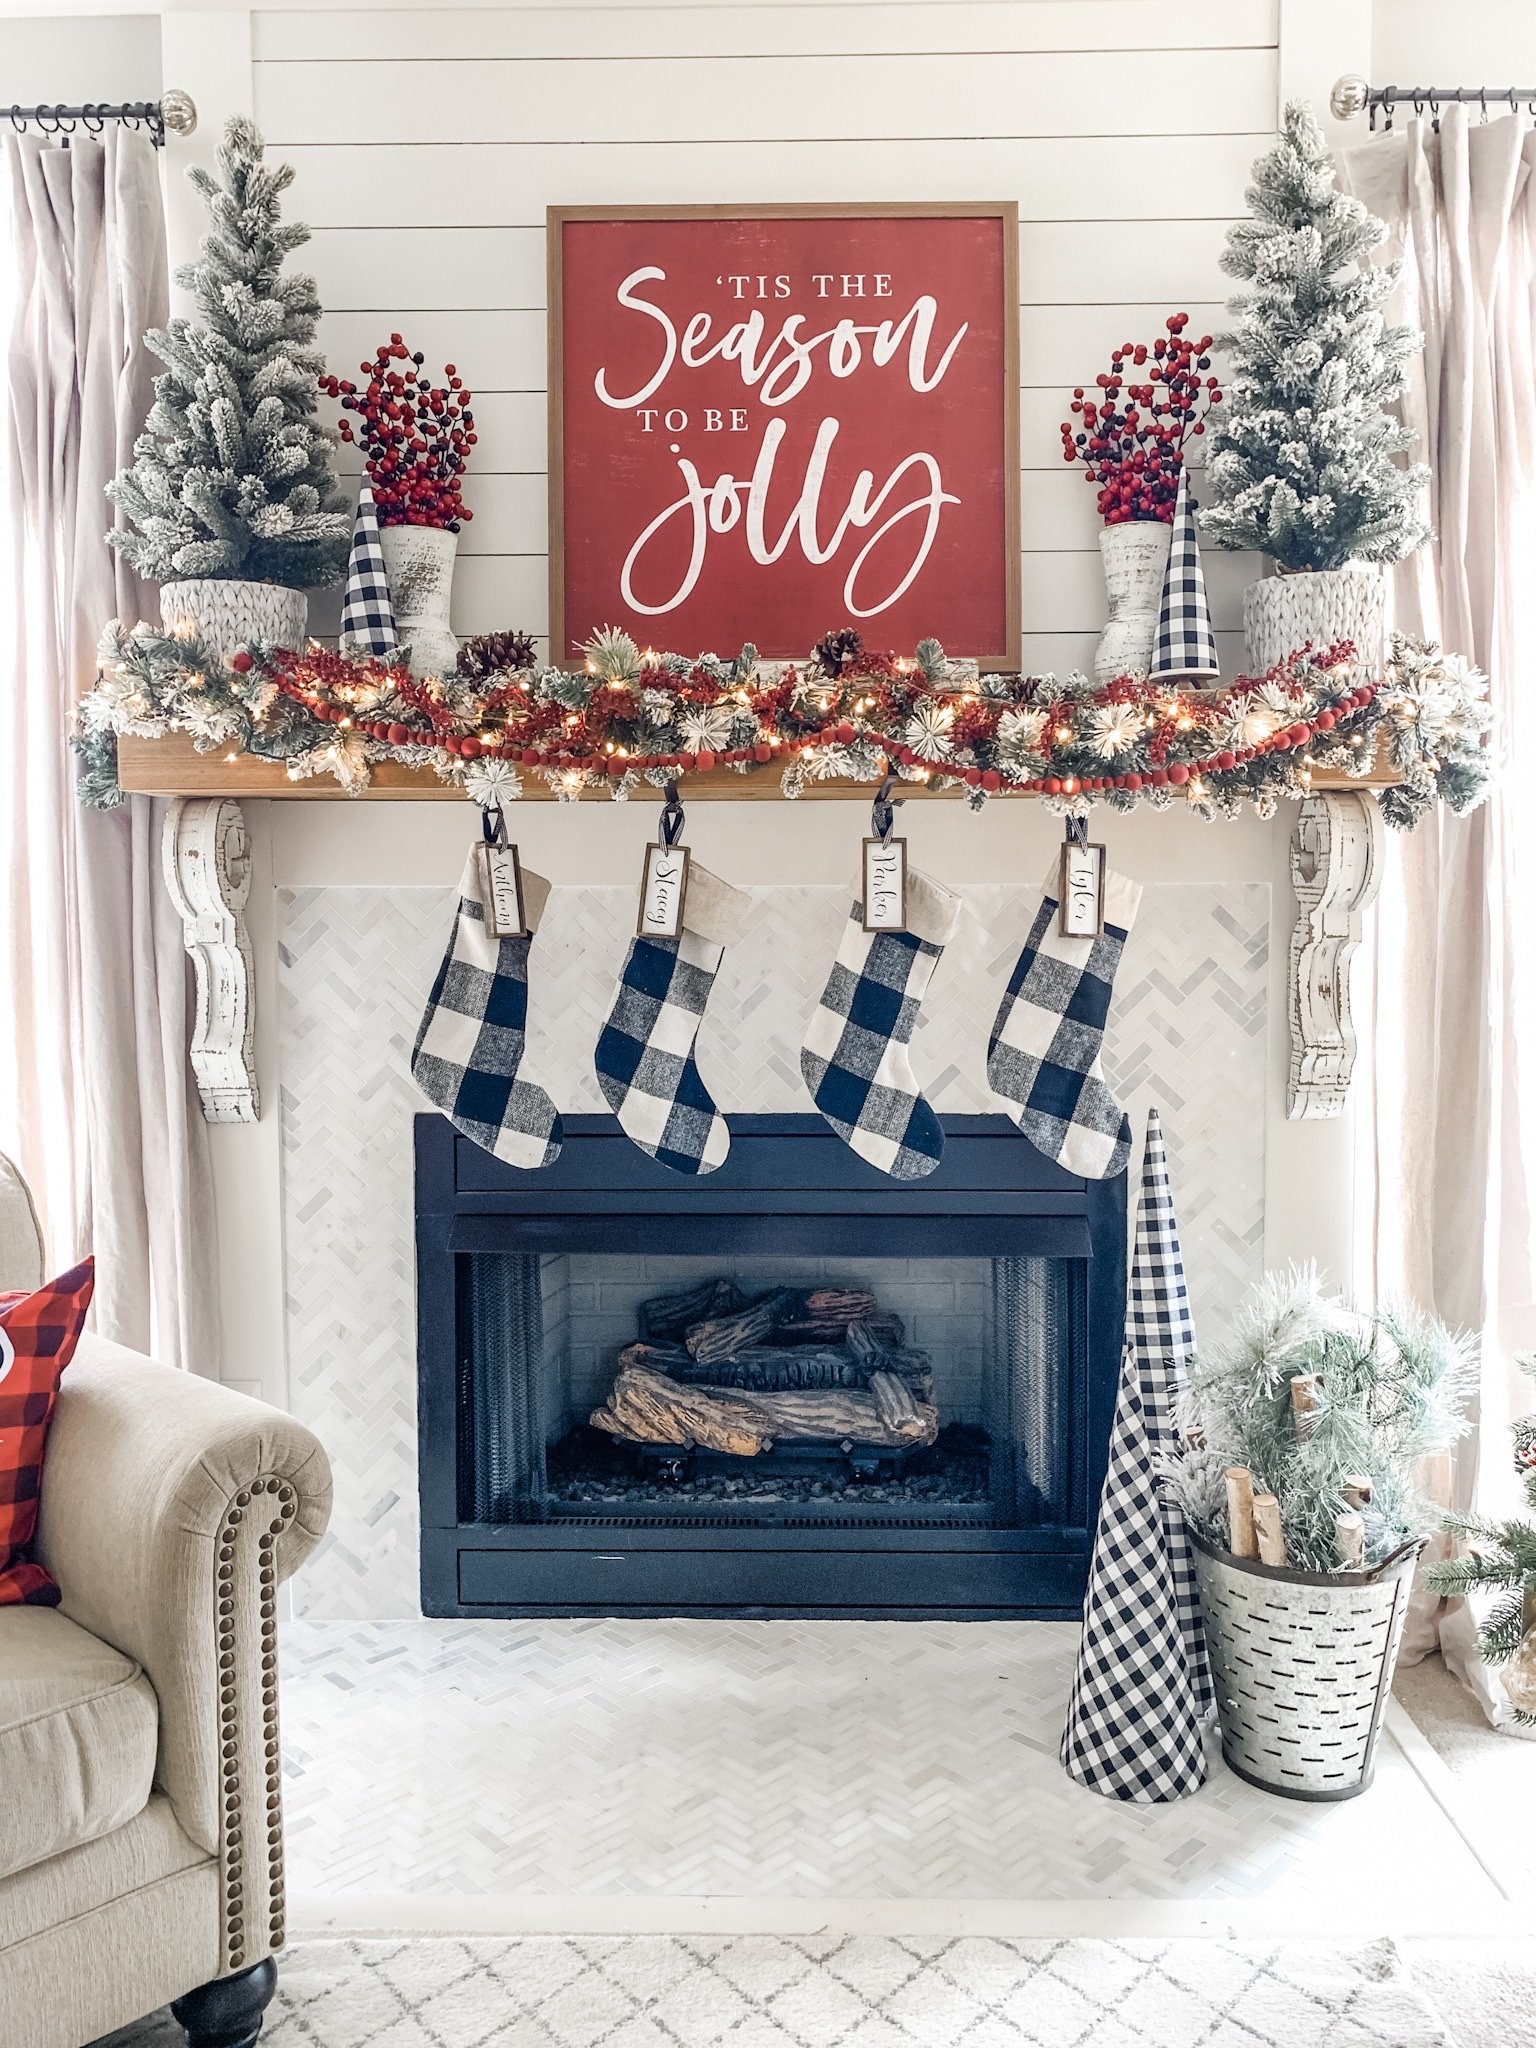 Christmas mantel decor ideas using buffalo check!